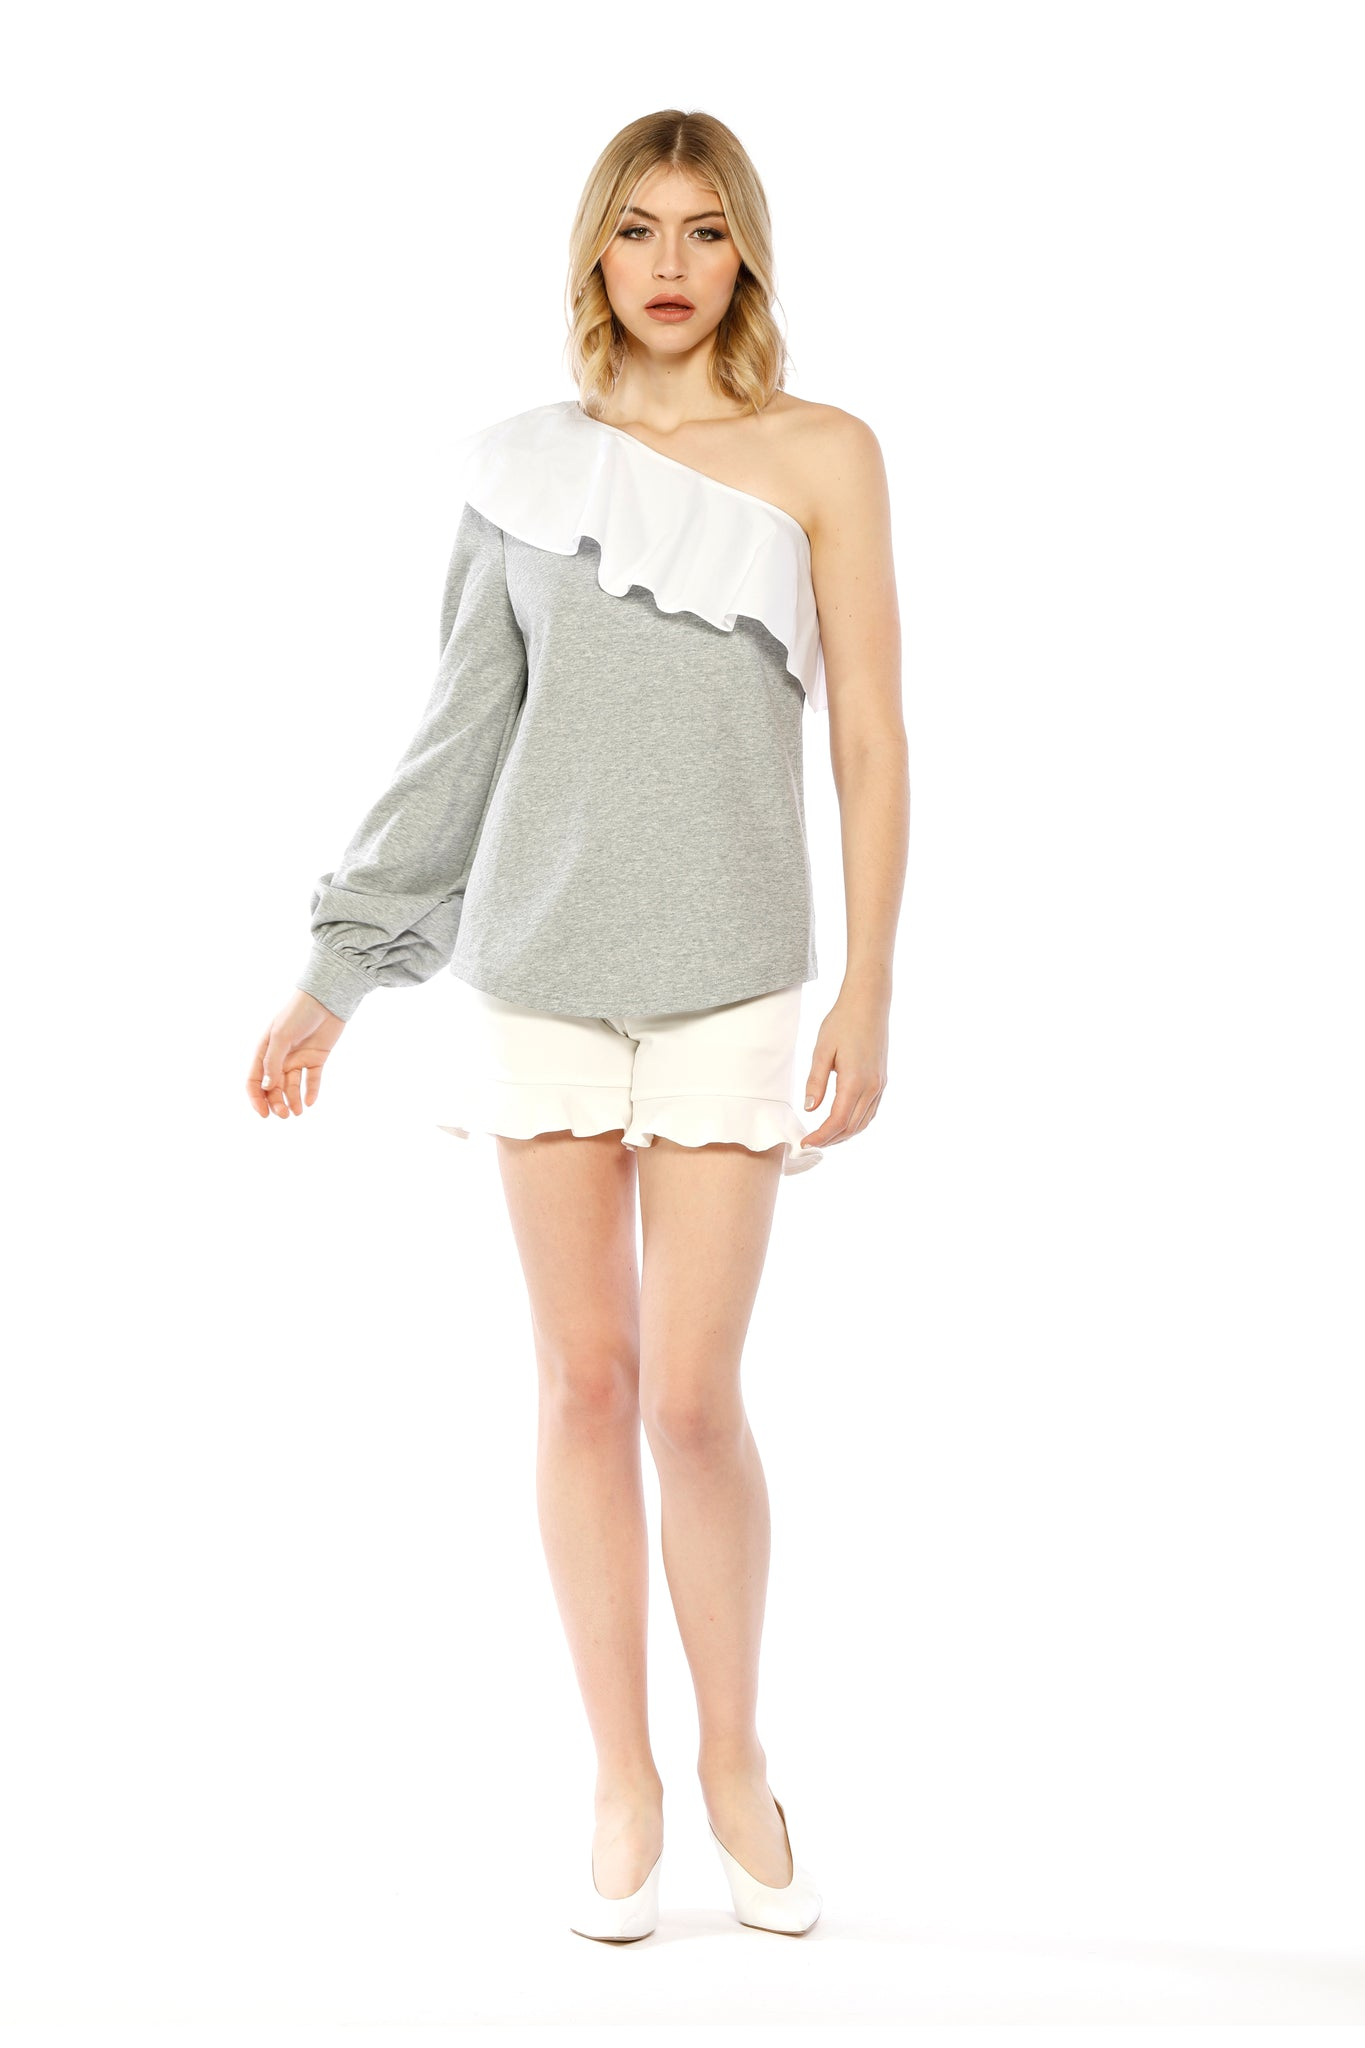 Front view (pose) of Marge Top, heather grey one-shouldered top with a large ruffled collar and a bishop sleeve adorned with a small tie. 87.6% Cotton and 12.4% Spandex - and Machine-washable.